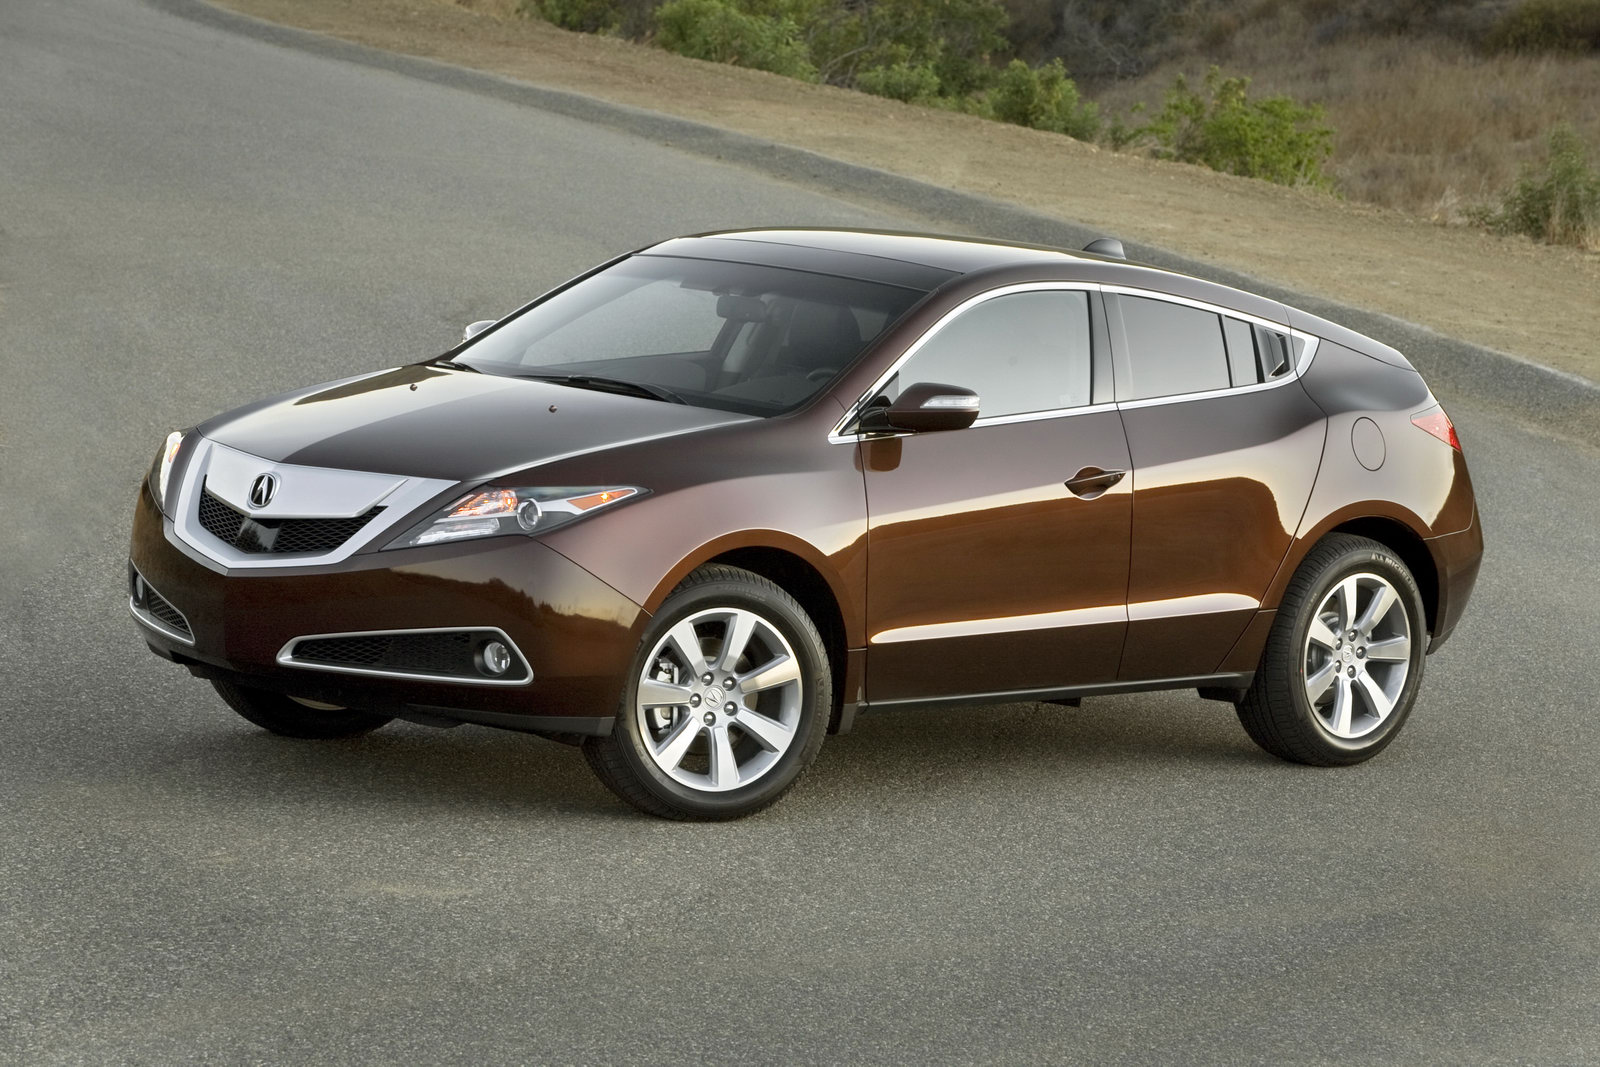 Pictures of acura zdx #2